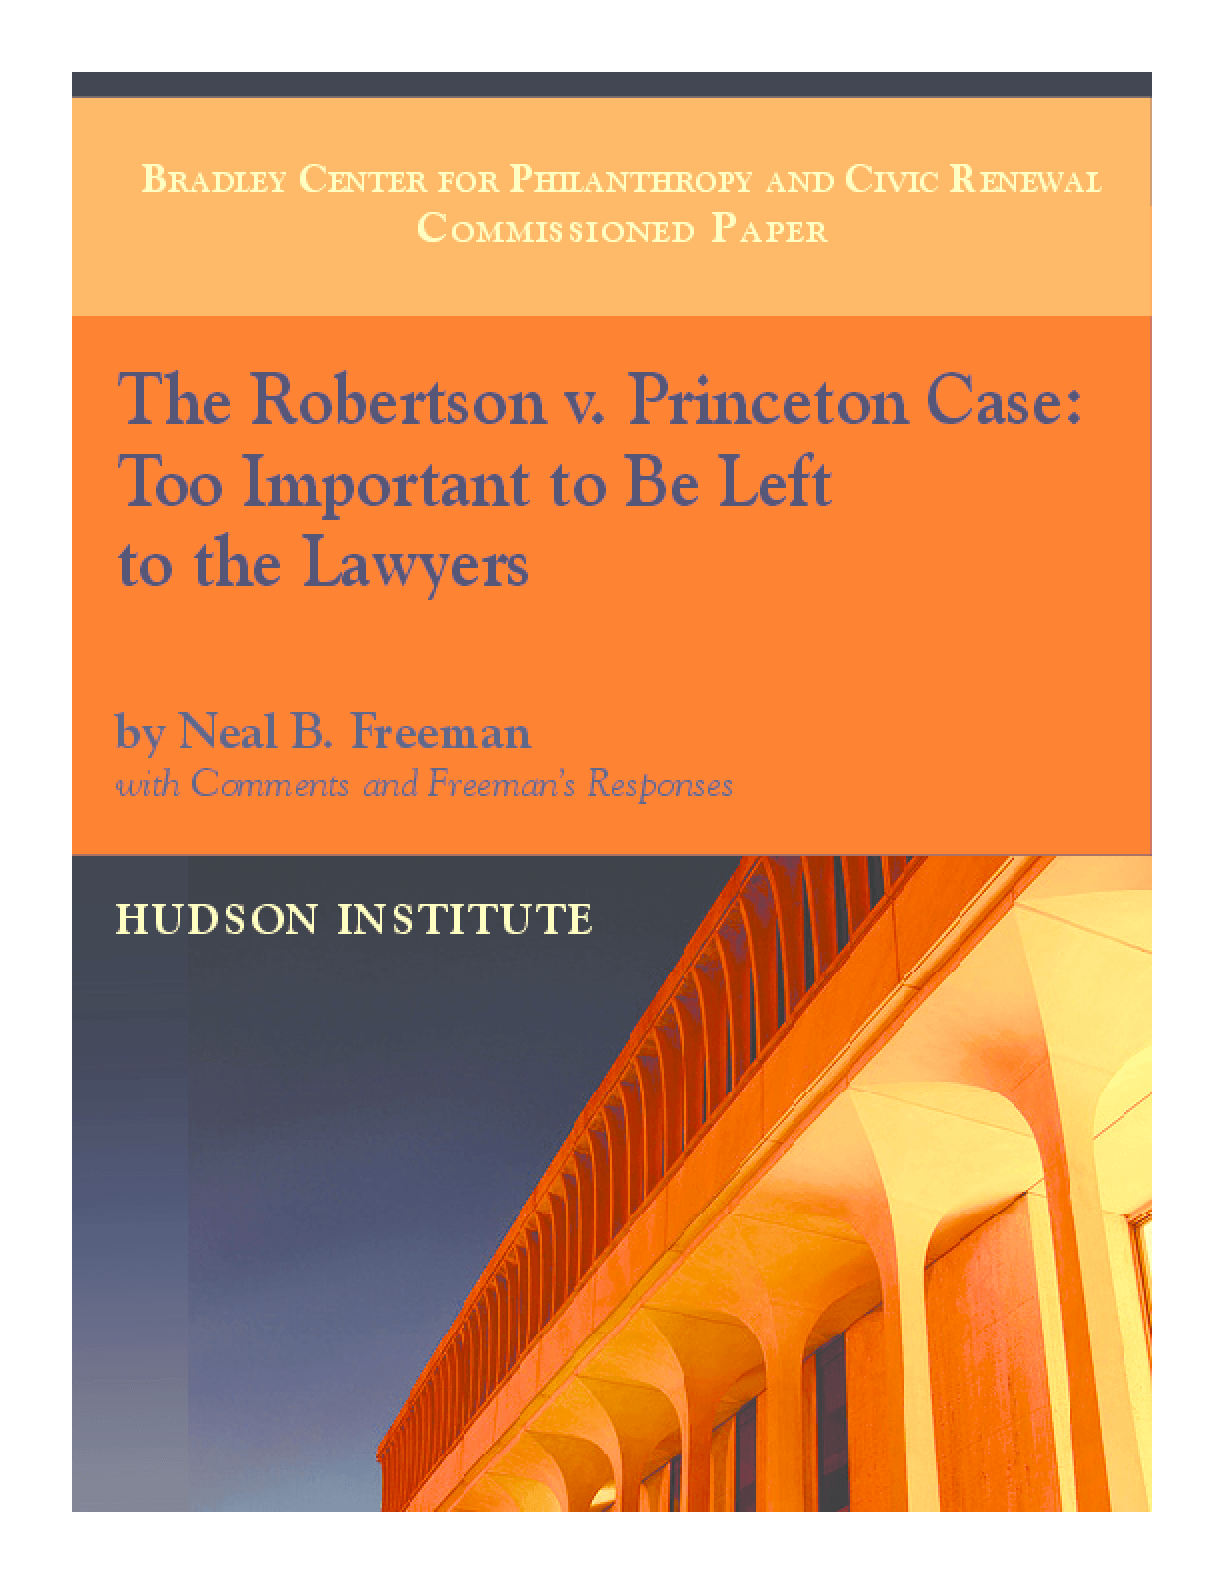 Robertson v. Princeton Case: Too Important to Be Left to the Lawyers, The